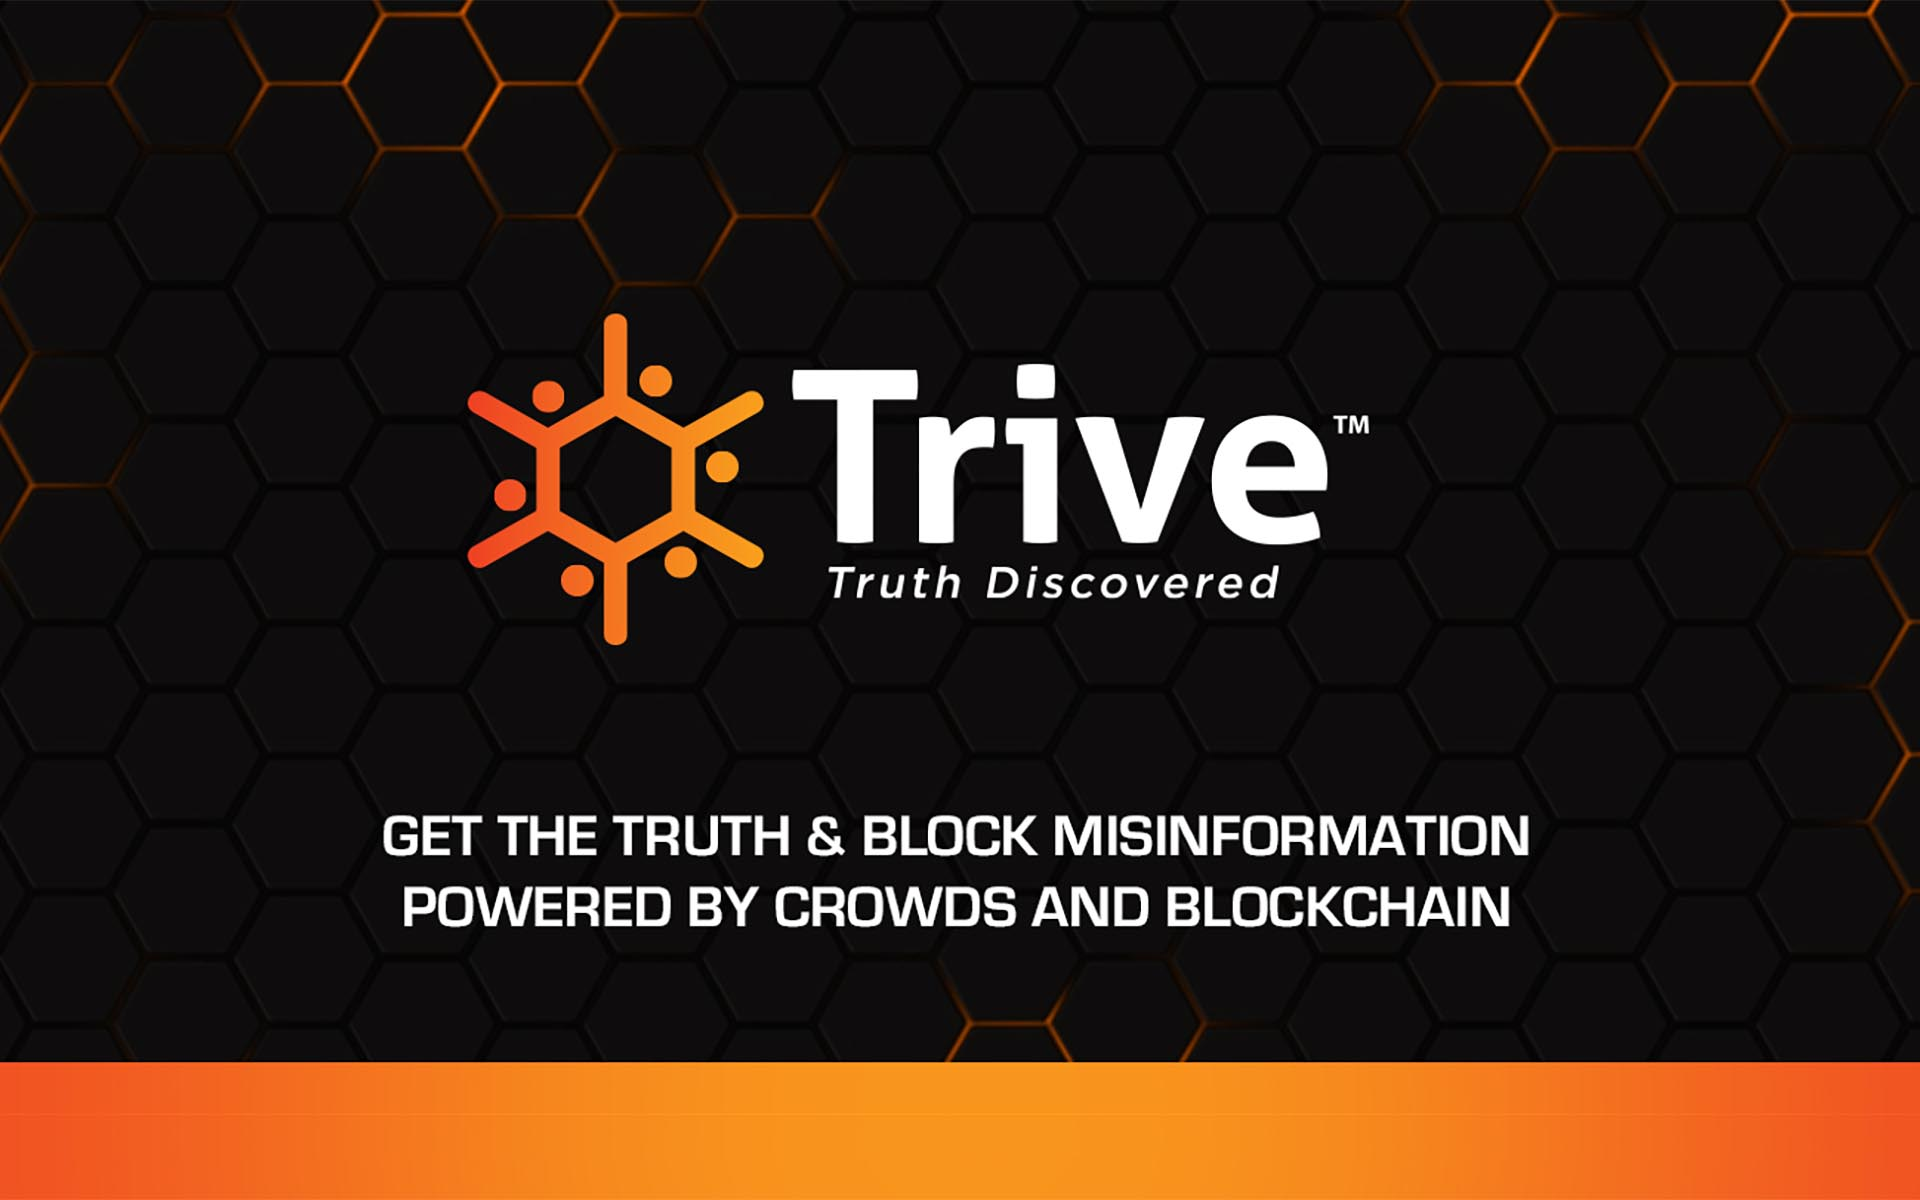 Live Pre-sale of Trive: Fights Fake News Using Cryptocurrency and Crowdsourced Research